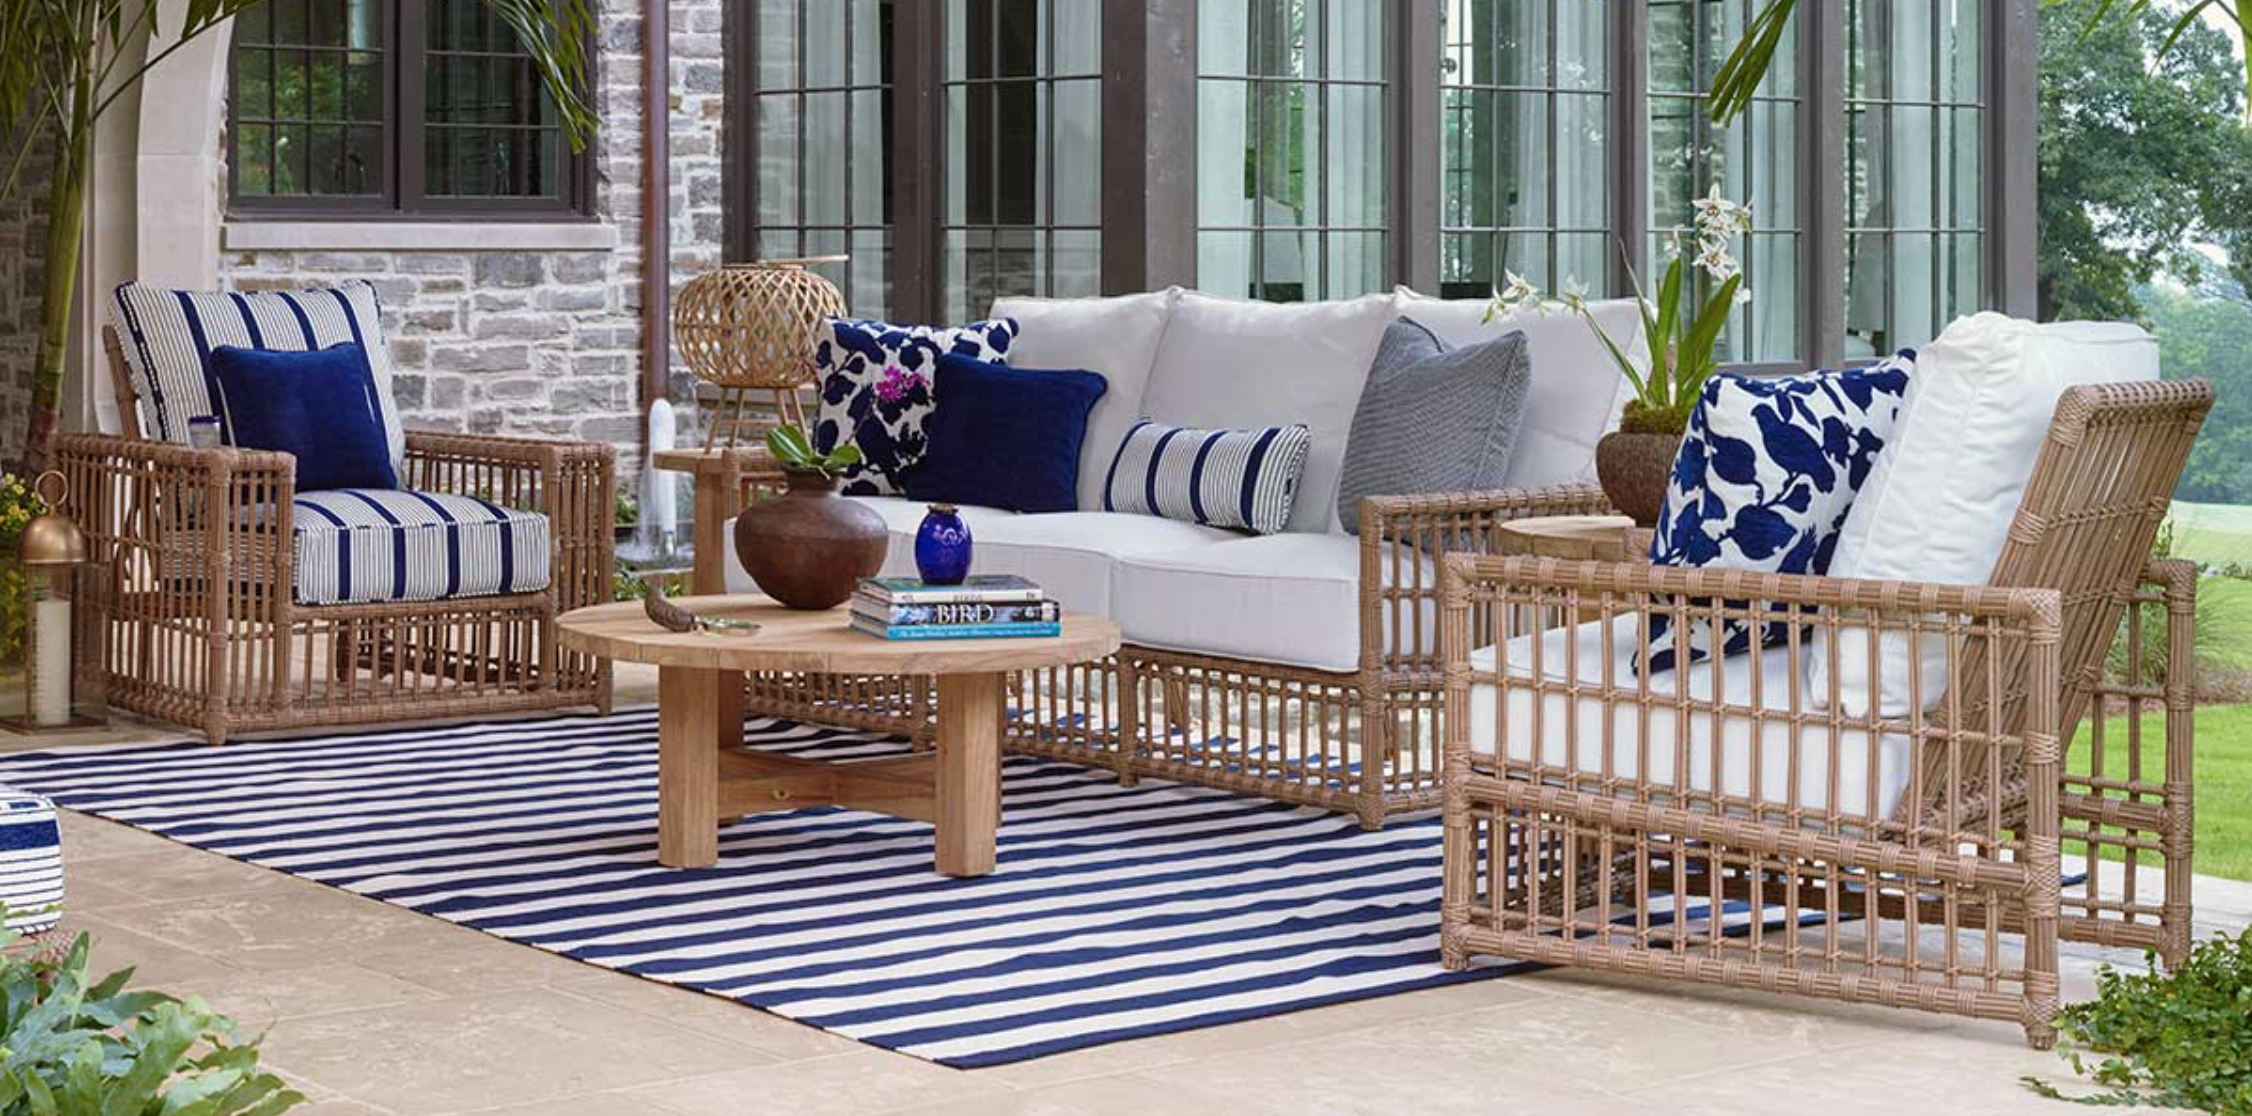 Captivating High Point Introductions Feature Stylish Indoor Details Part 17